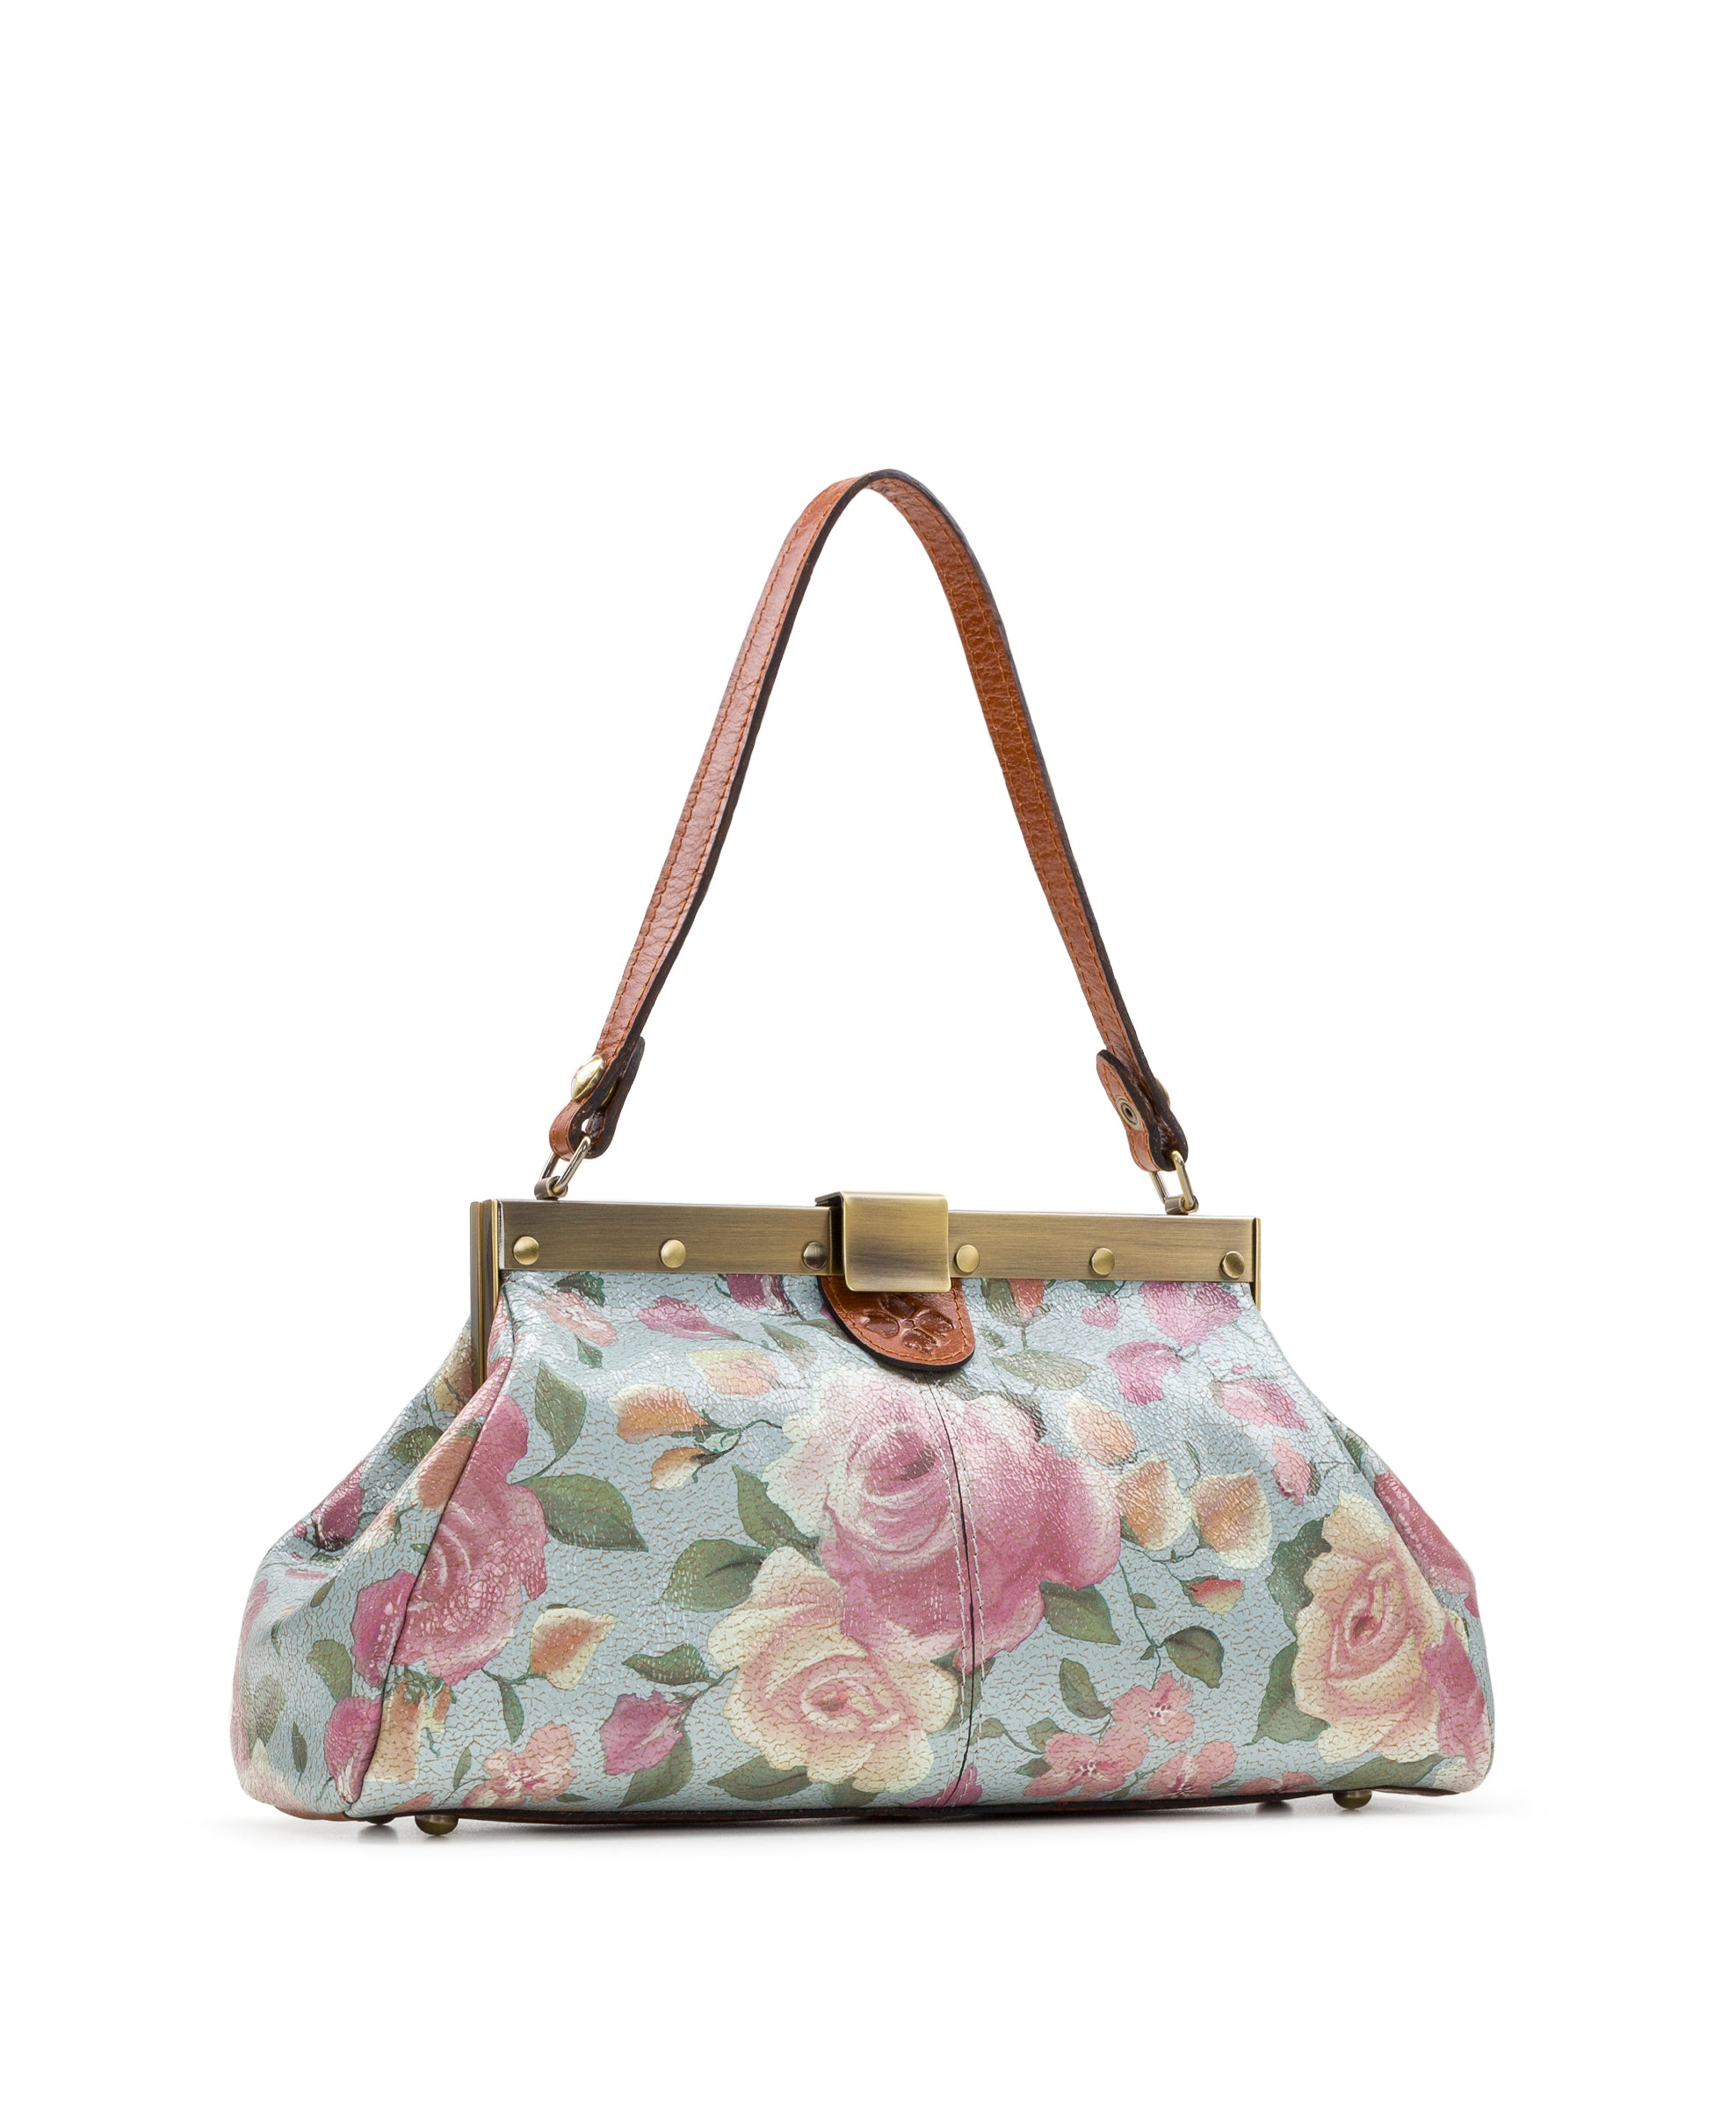 Ferrara Frame Satchel - Crackled Rose 3